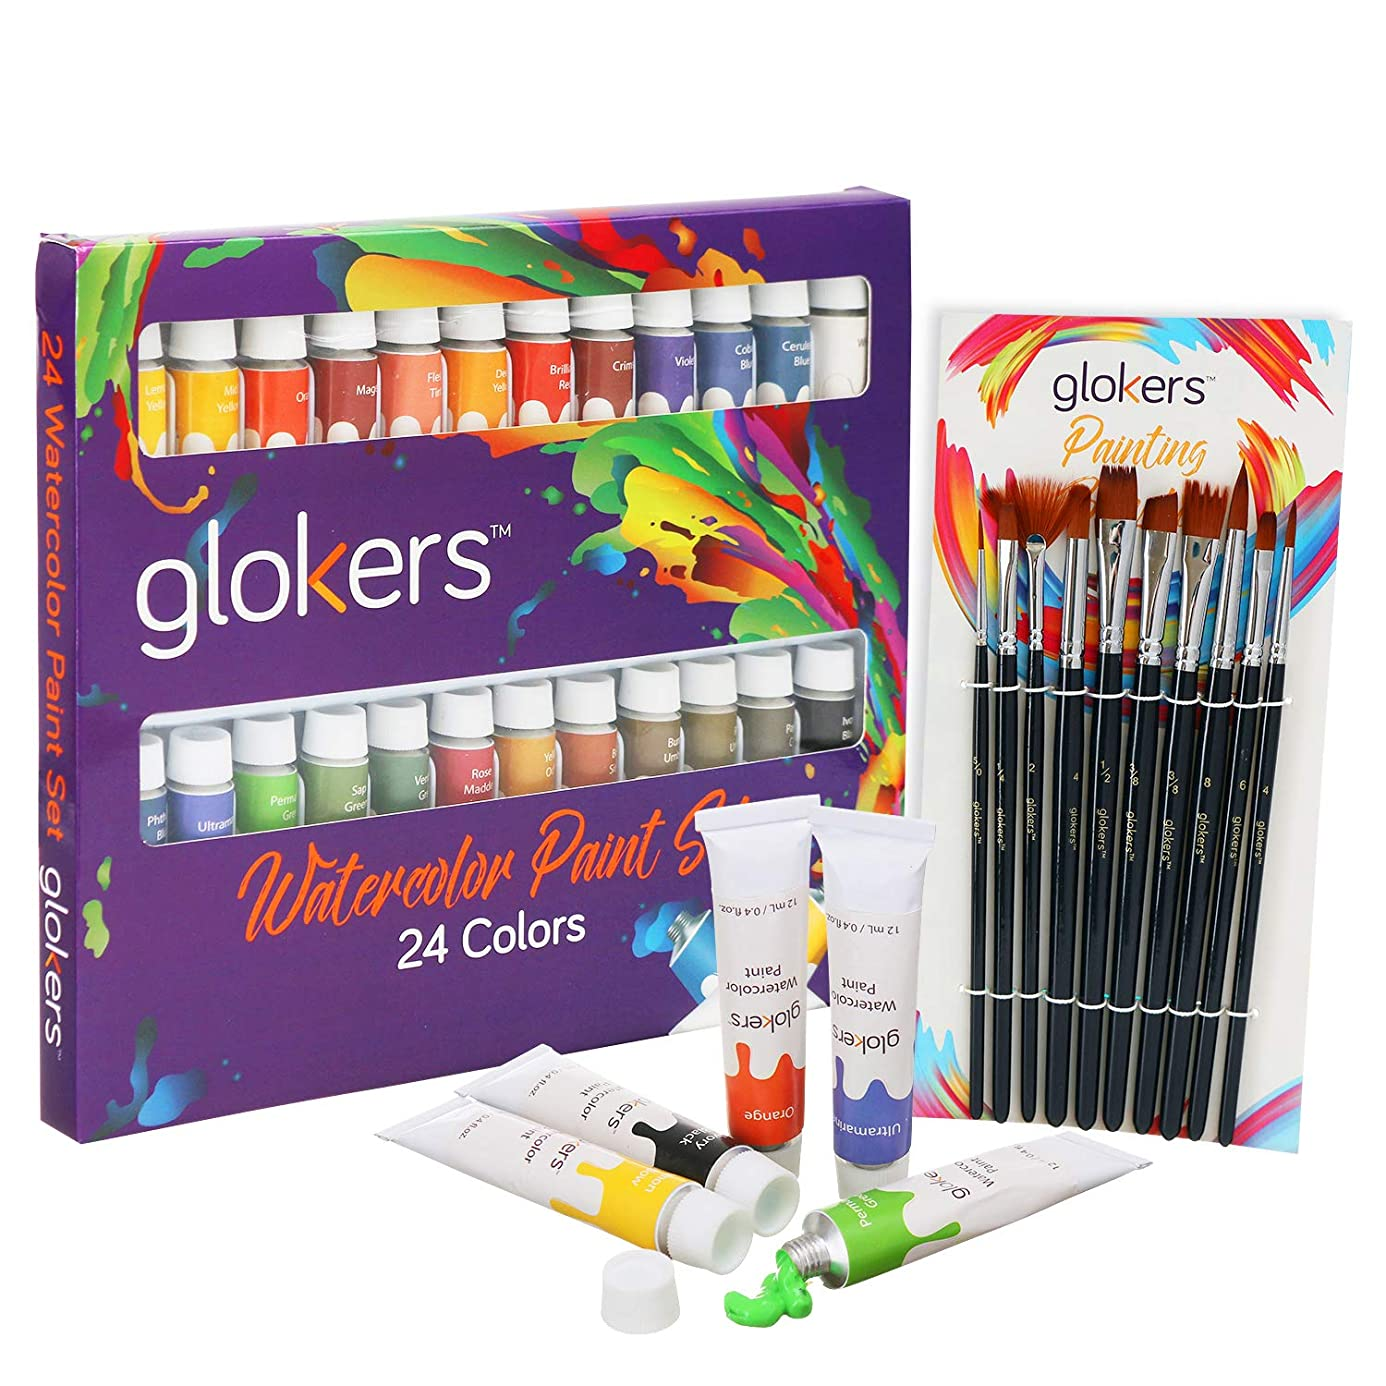 Premium Watercolor Paint Set by Glokers | Arts and Crafts Supplies Include 24 Paint Tubes/Colors + 10 Professional Paint Brushes | Painting Art Kit for Adults, Beginners, or Advanced Students why3472764